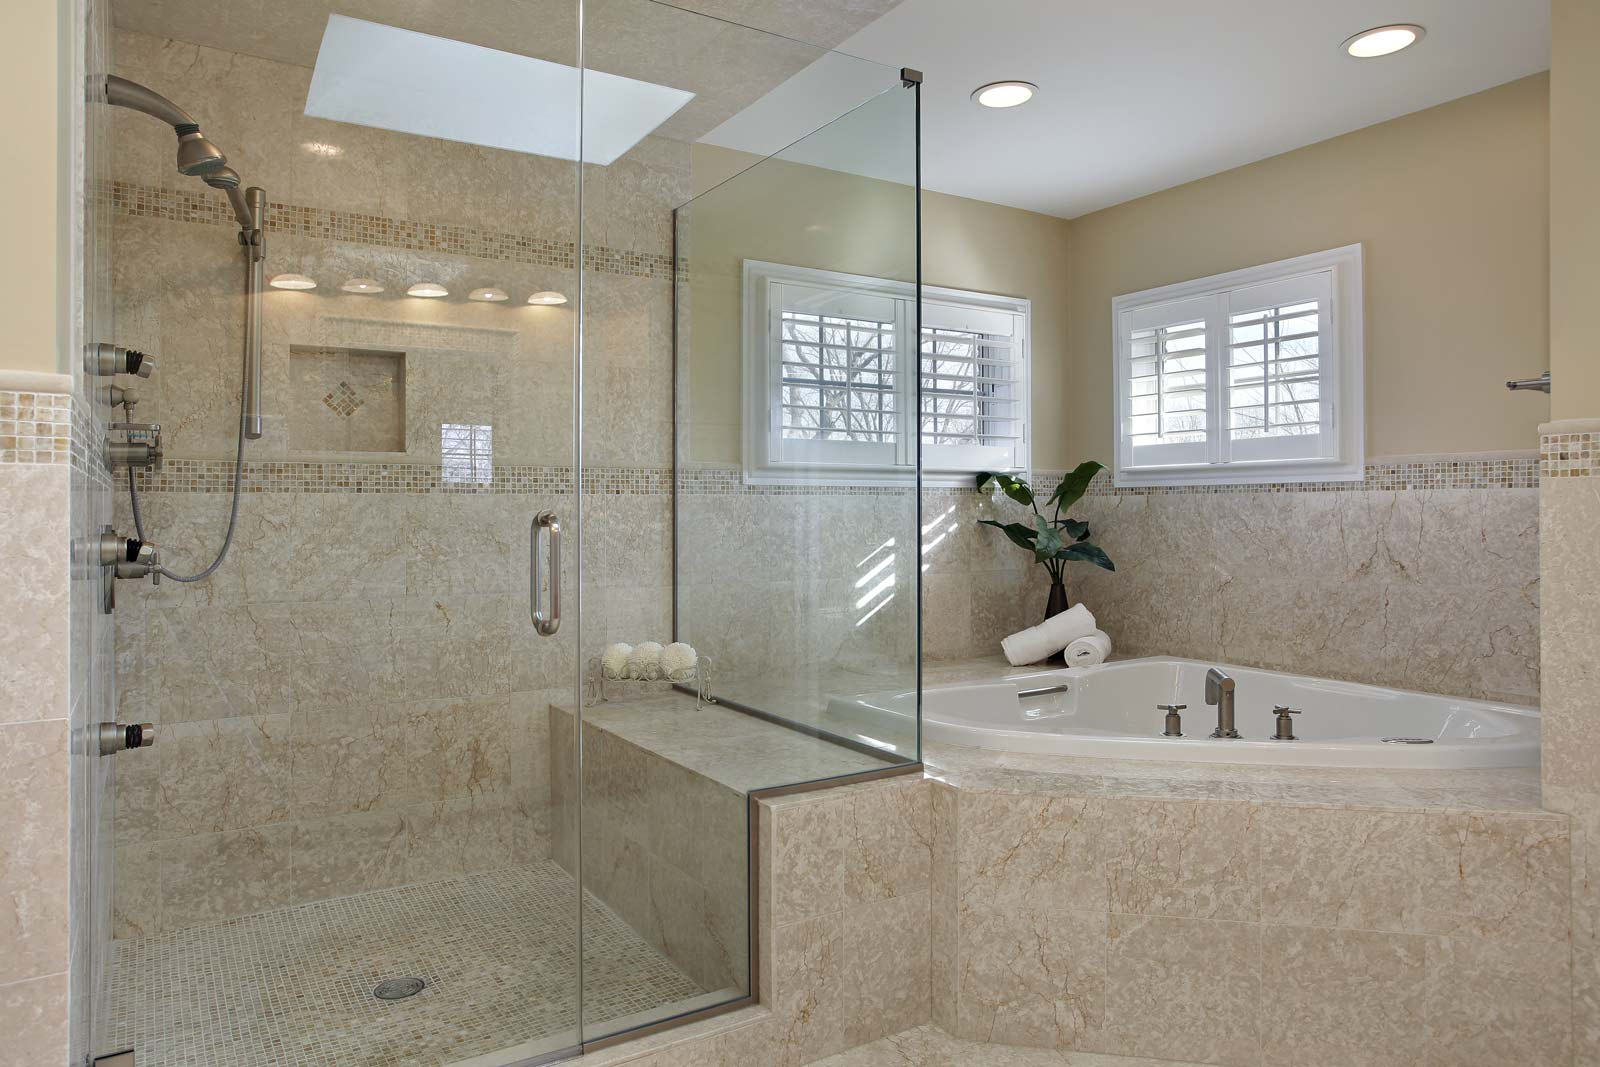 Glass Shower Door - Frameless Glass Shower Enclosures Near Me by Shower Doors of Charlotte NC